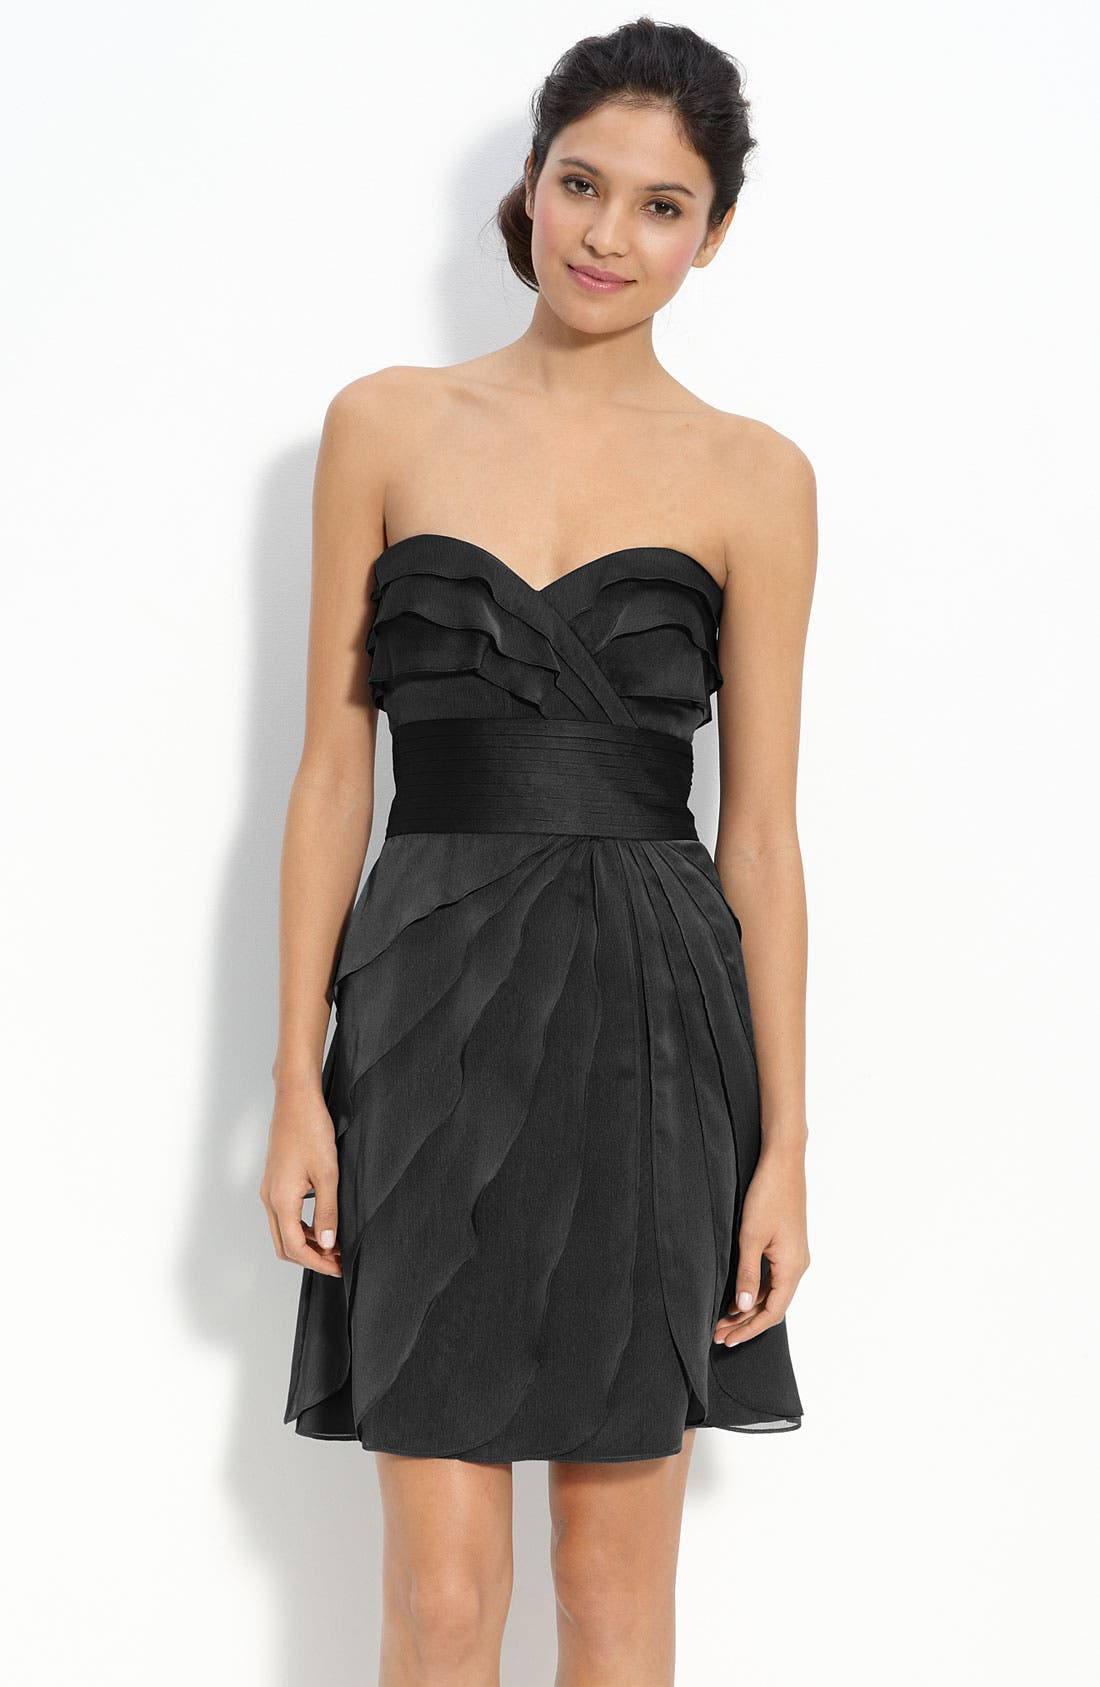 Alternate Image 1 Selected - Adrianna Papell Tiered Iridescent Chiffon Dress (Petite)